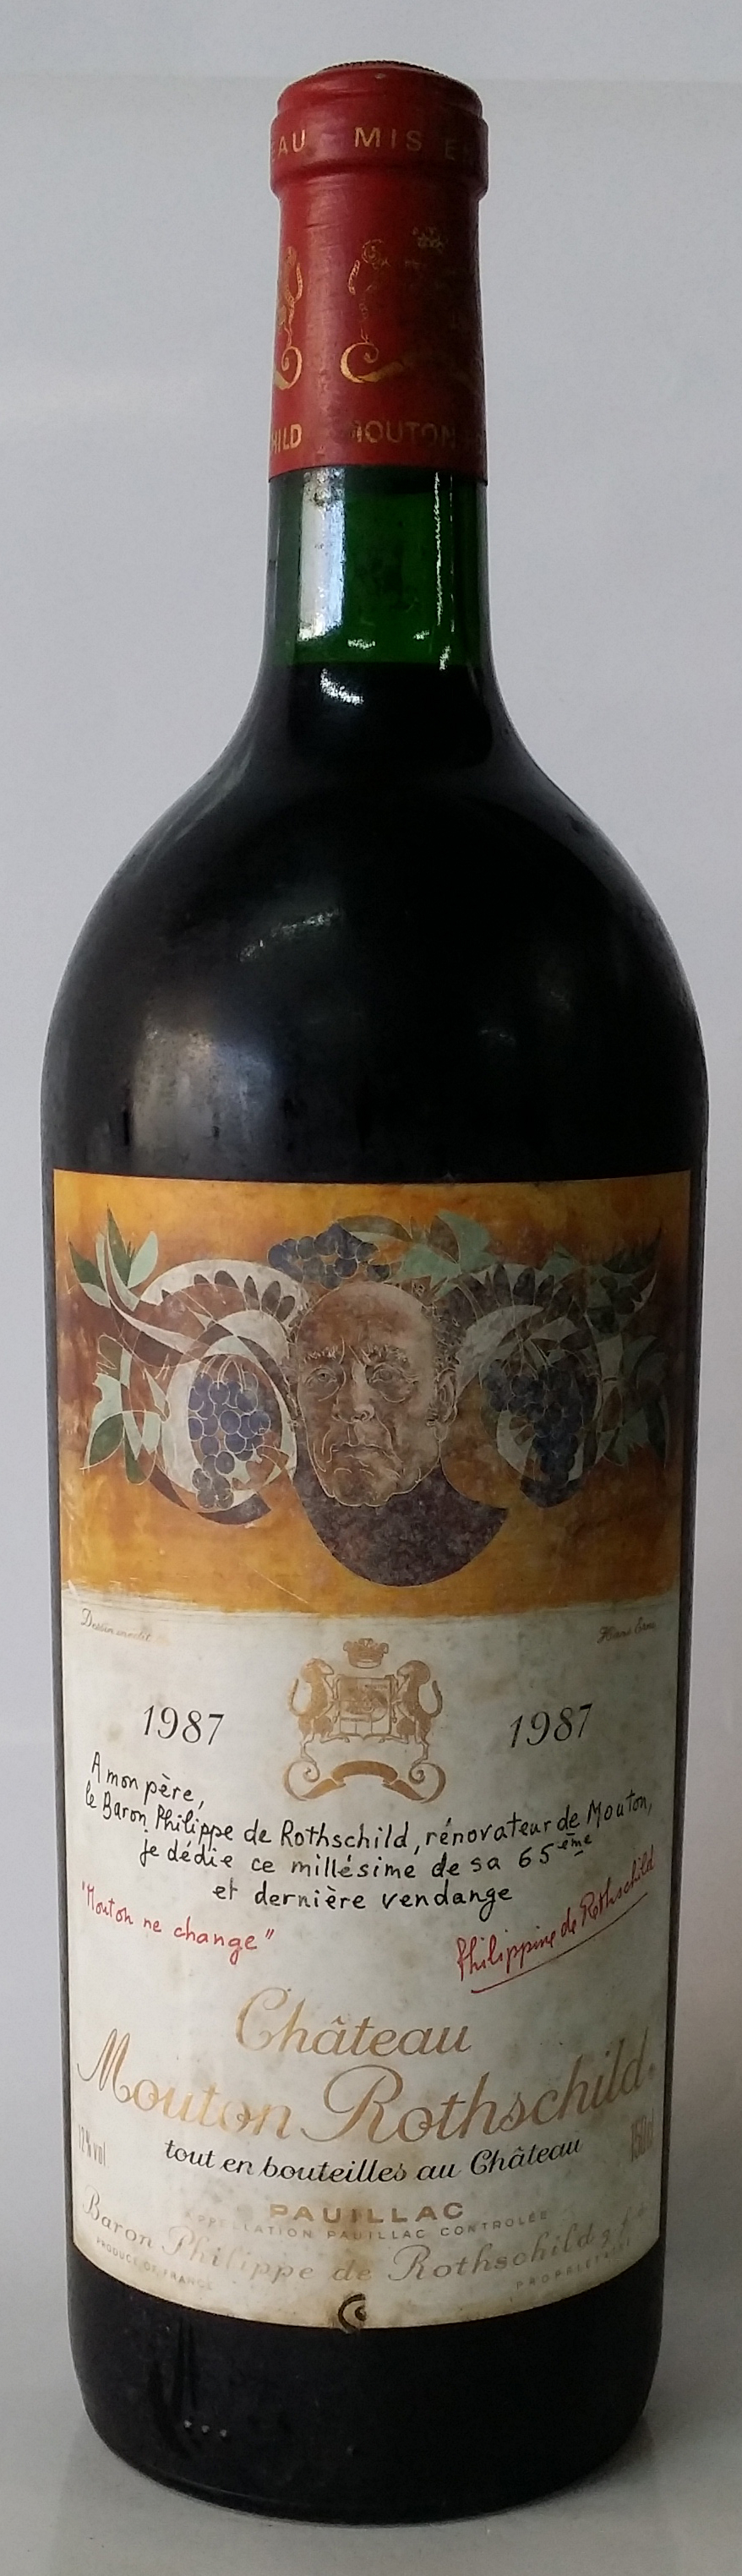 1987 Magnum Baron Philippe Rothschild Chateau Mouton Rothschild